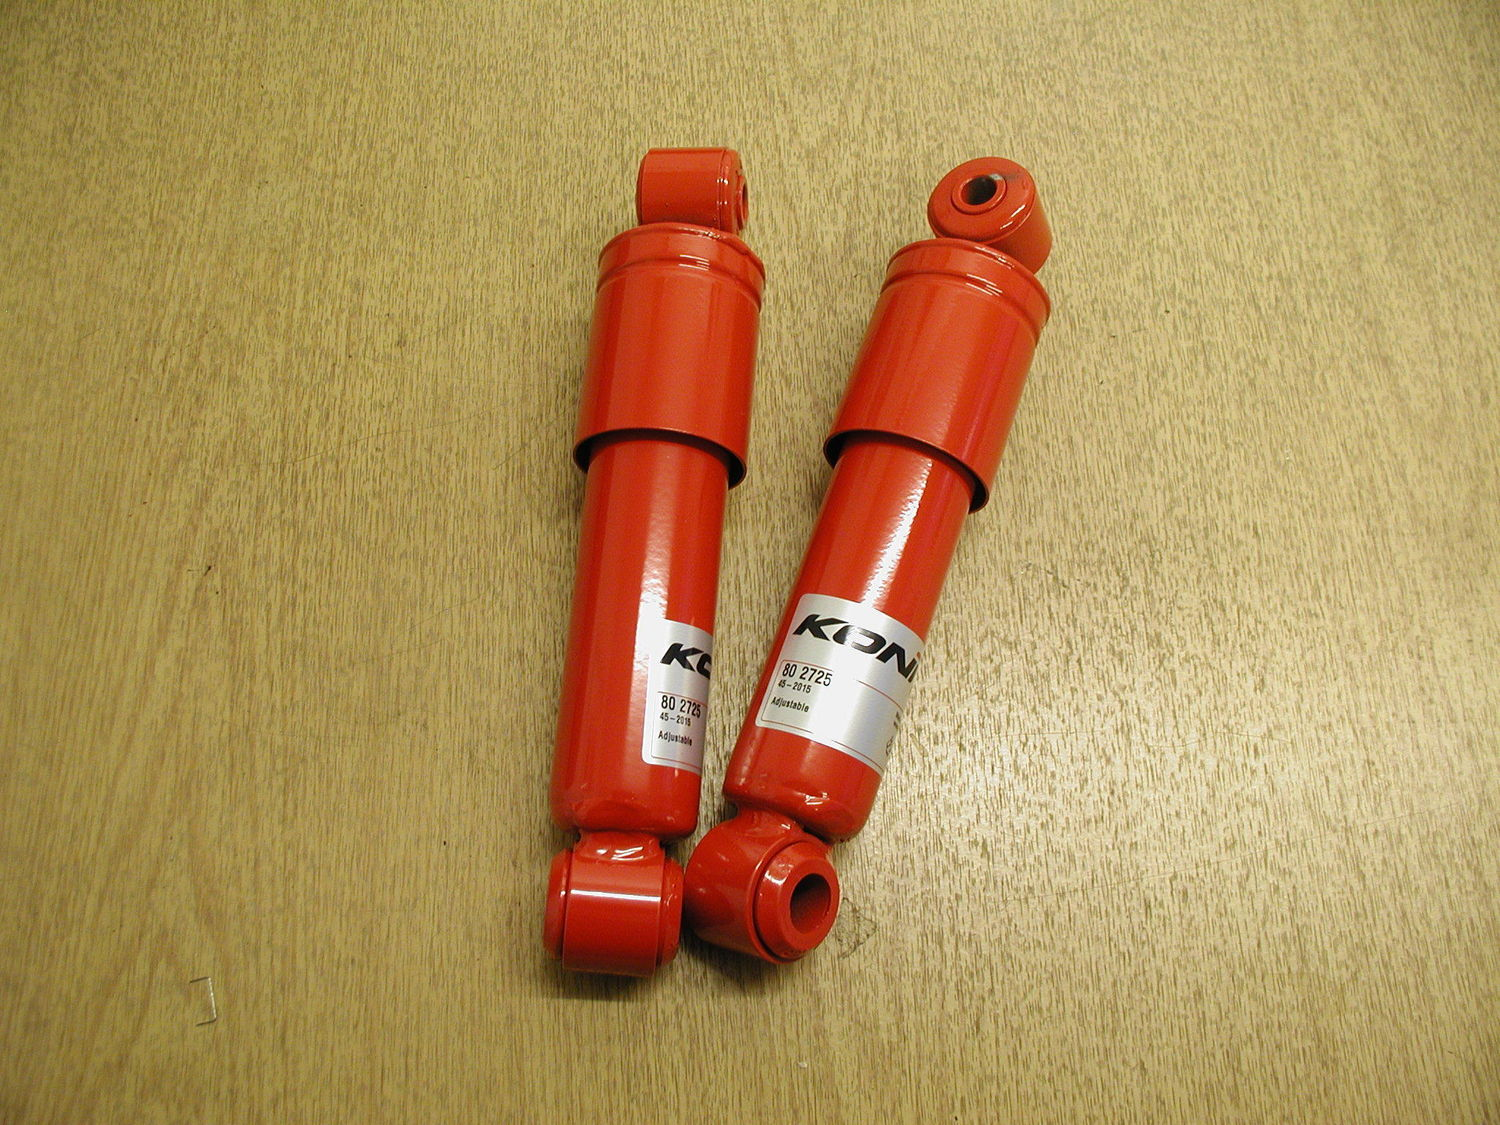 Koni Shock Absorbers - Short Rear (per set)